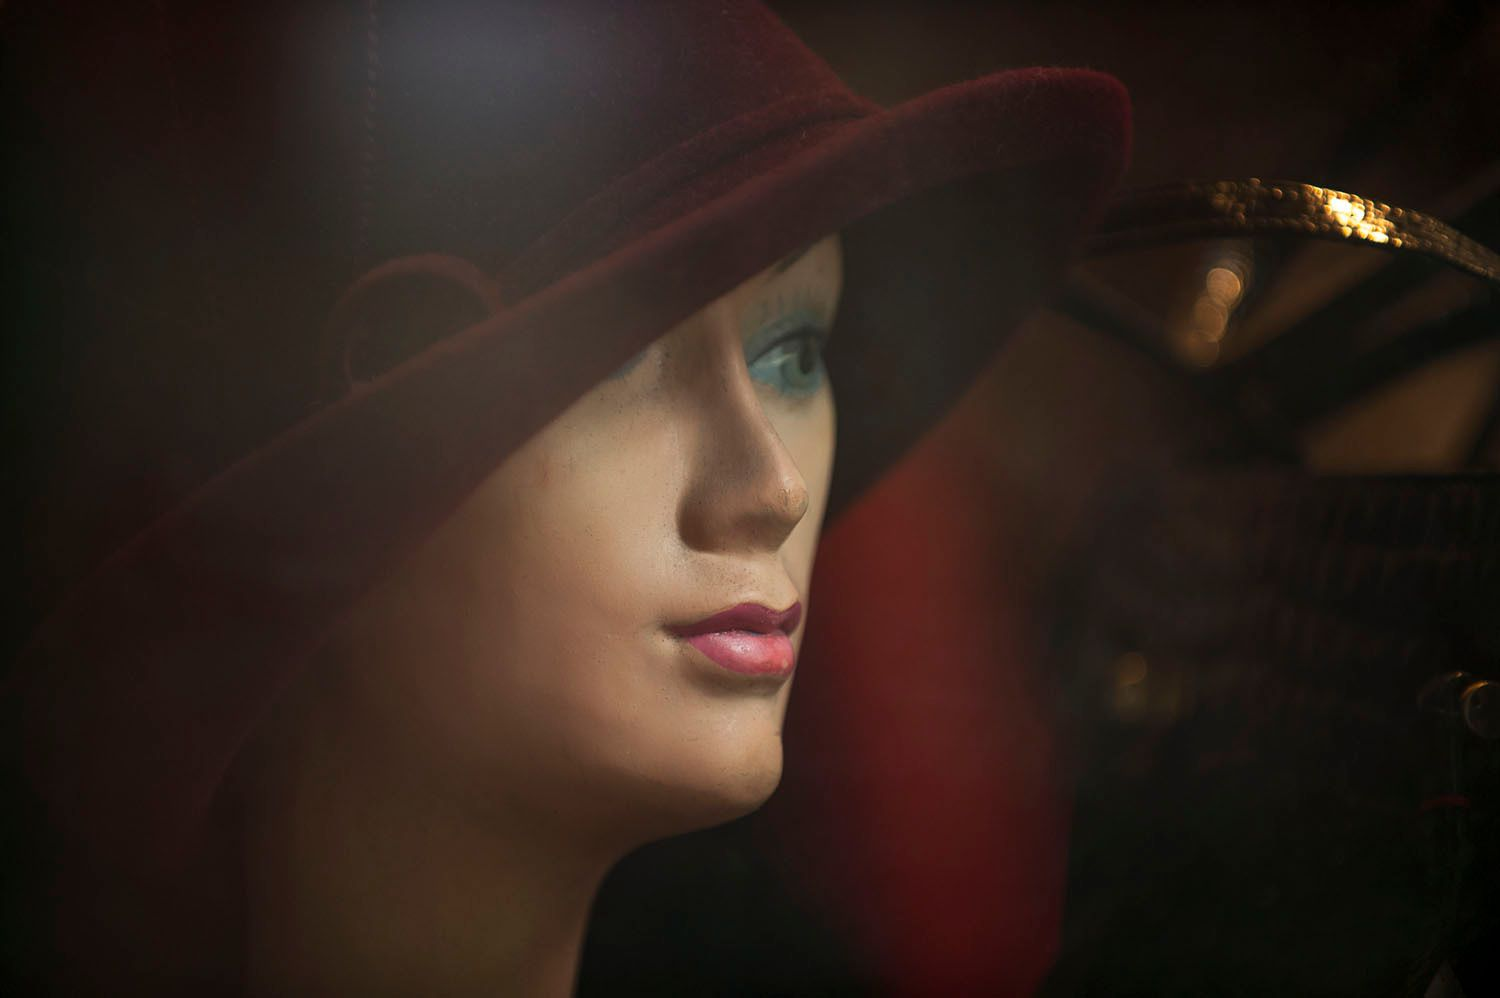 Head of Female Mannequin with Hat